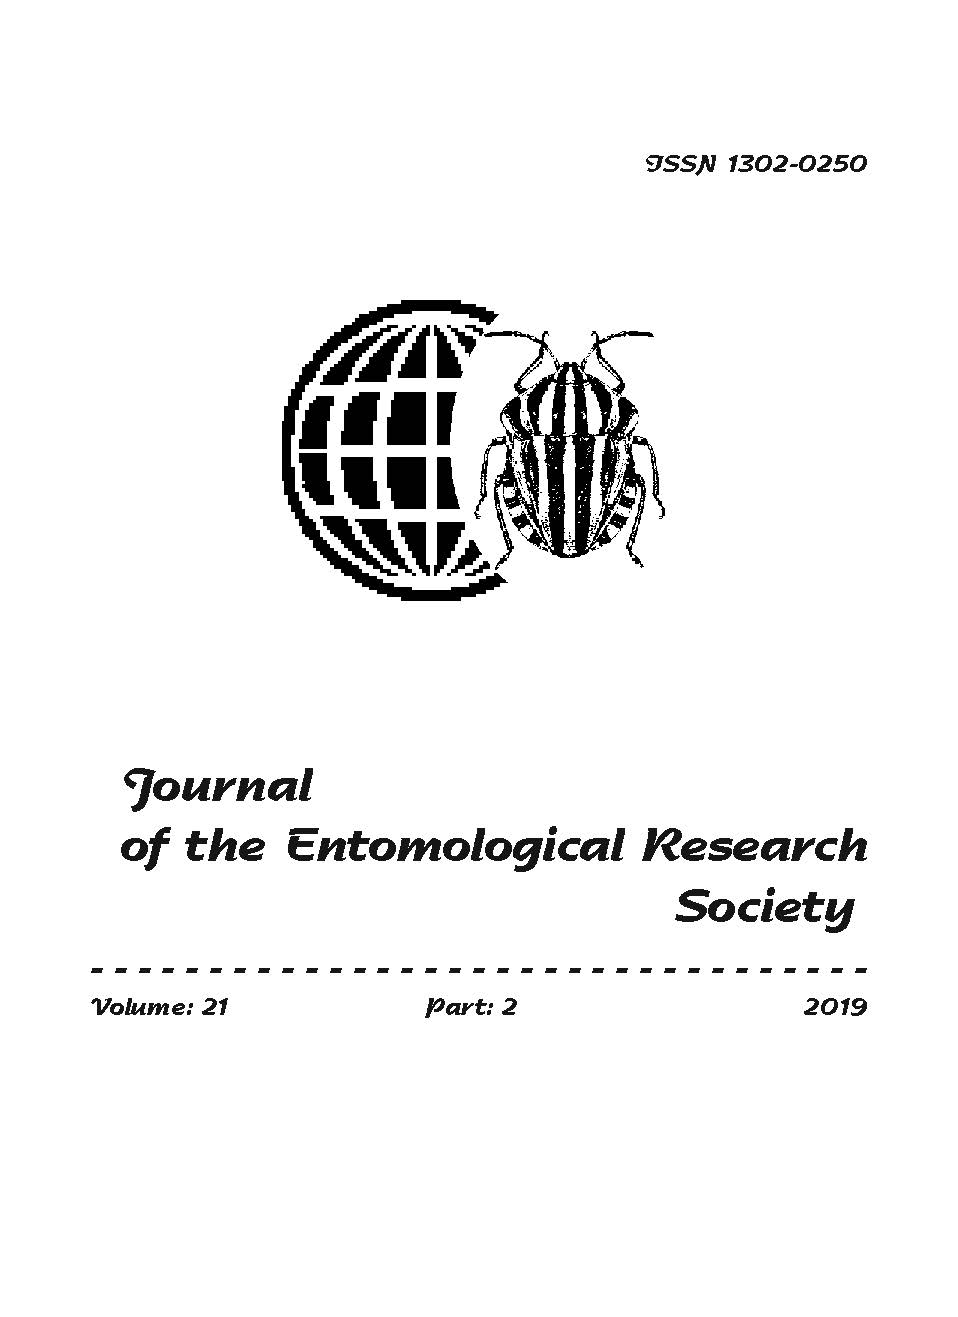 View Vol. 21 No. 2 (2019): Journal of the Entomological Research Society